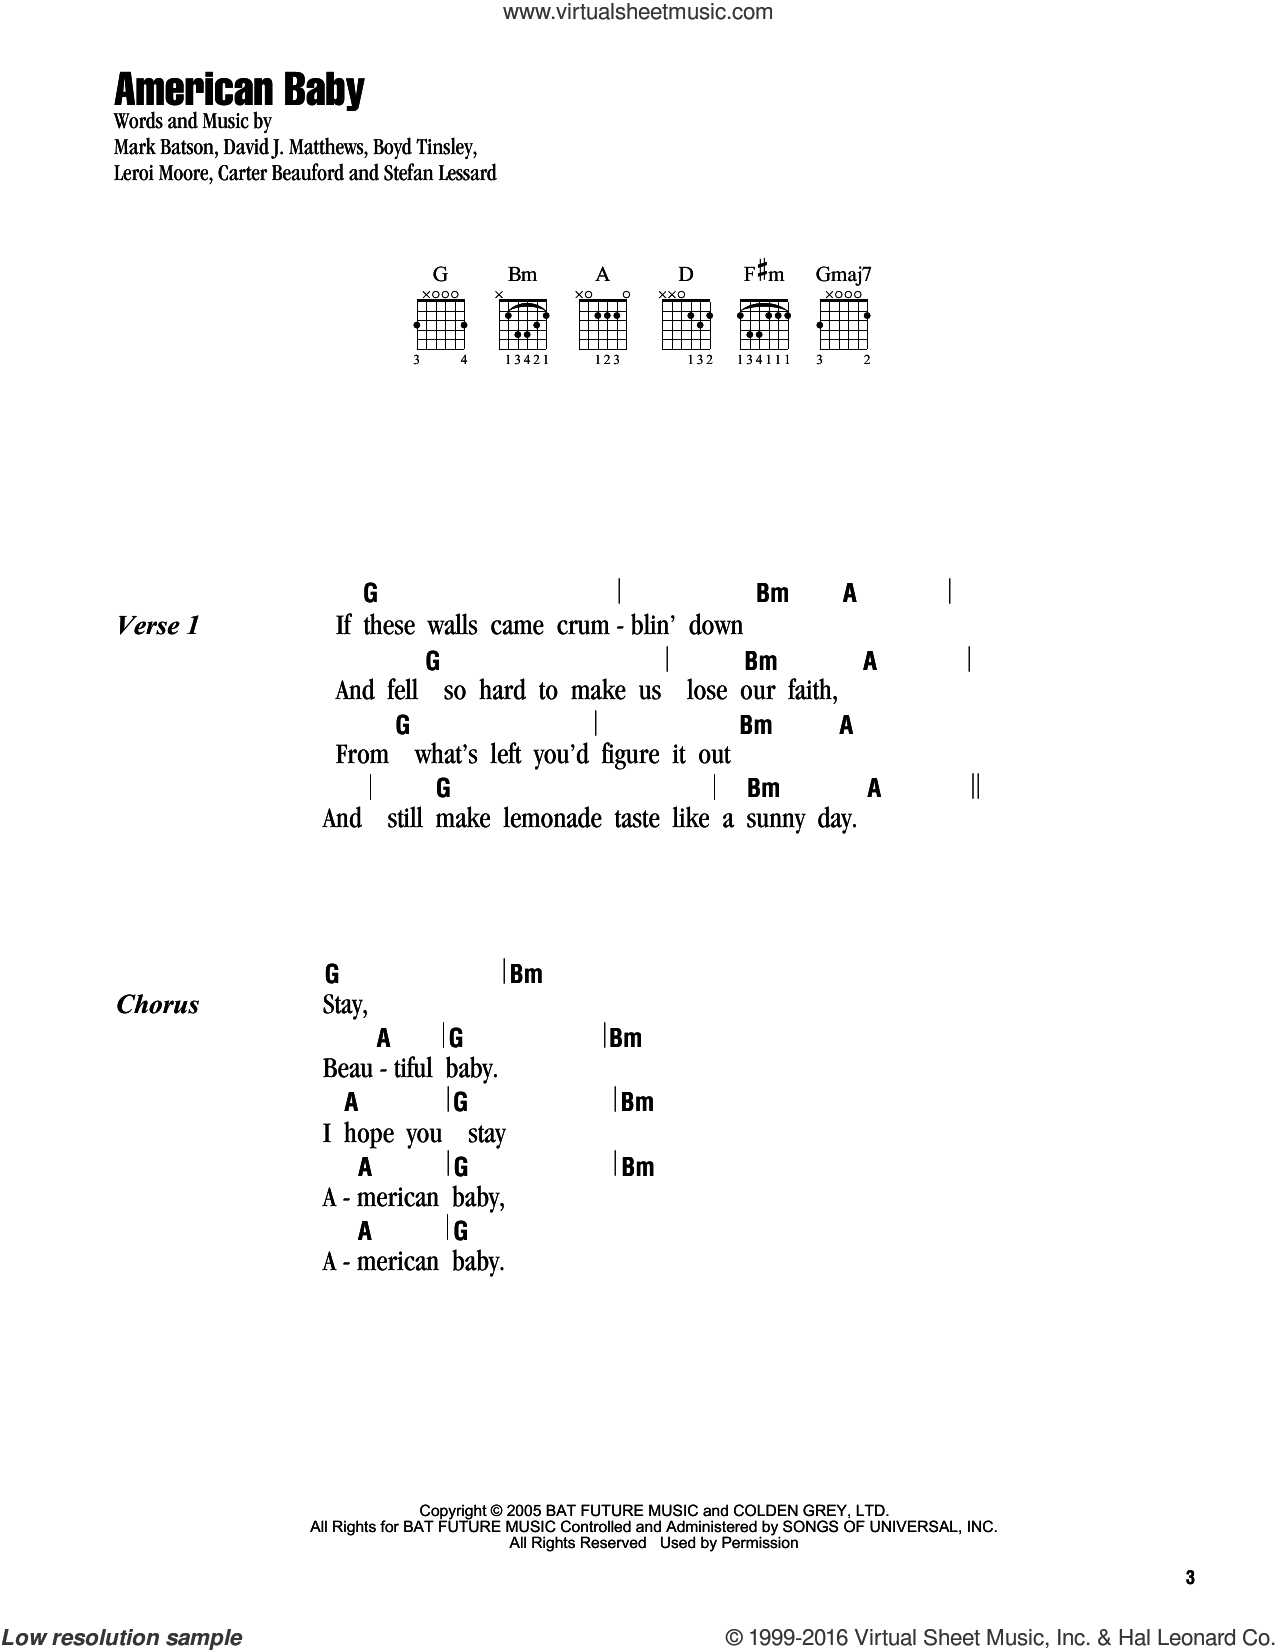 American Baby sheet music for guitar (chords) by Mark Batson and Dave Matthews Band. Score Image Preview.